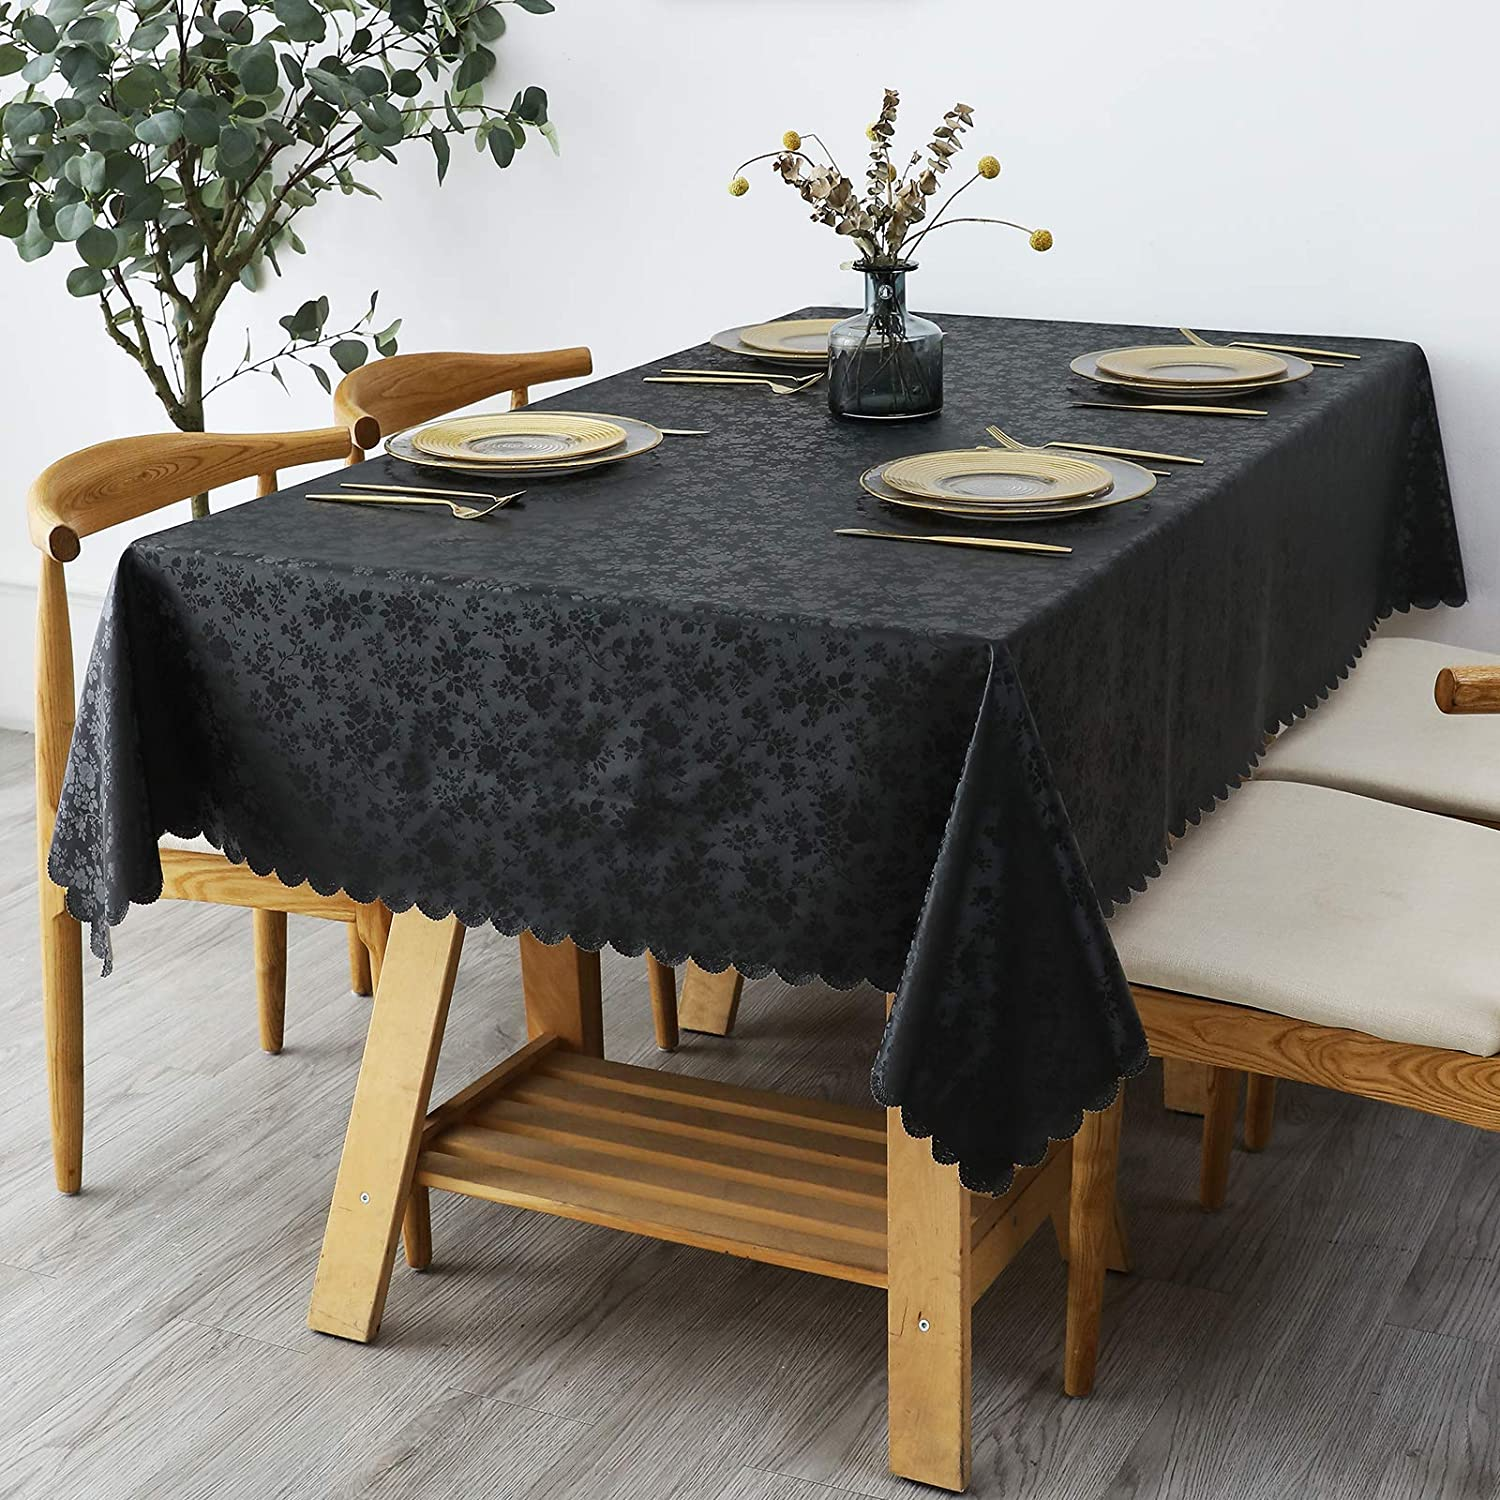 "smiry Waterproof Vinyl Tablecloth, Rectangle Heavy Duty Table Cloth, Wipeable Table Cover for Kitchen and Dining Room (Black, 52"" X 70"")"